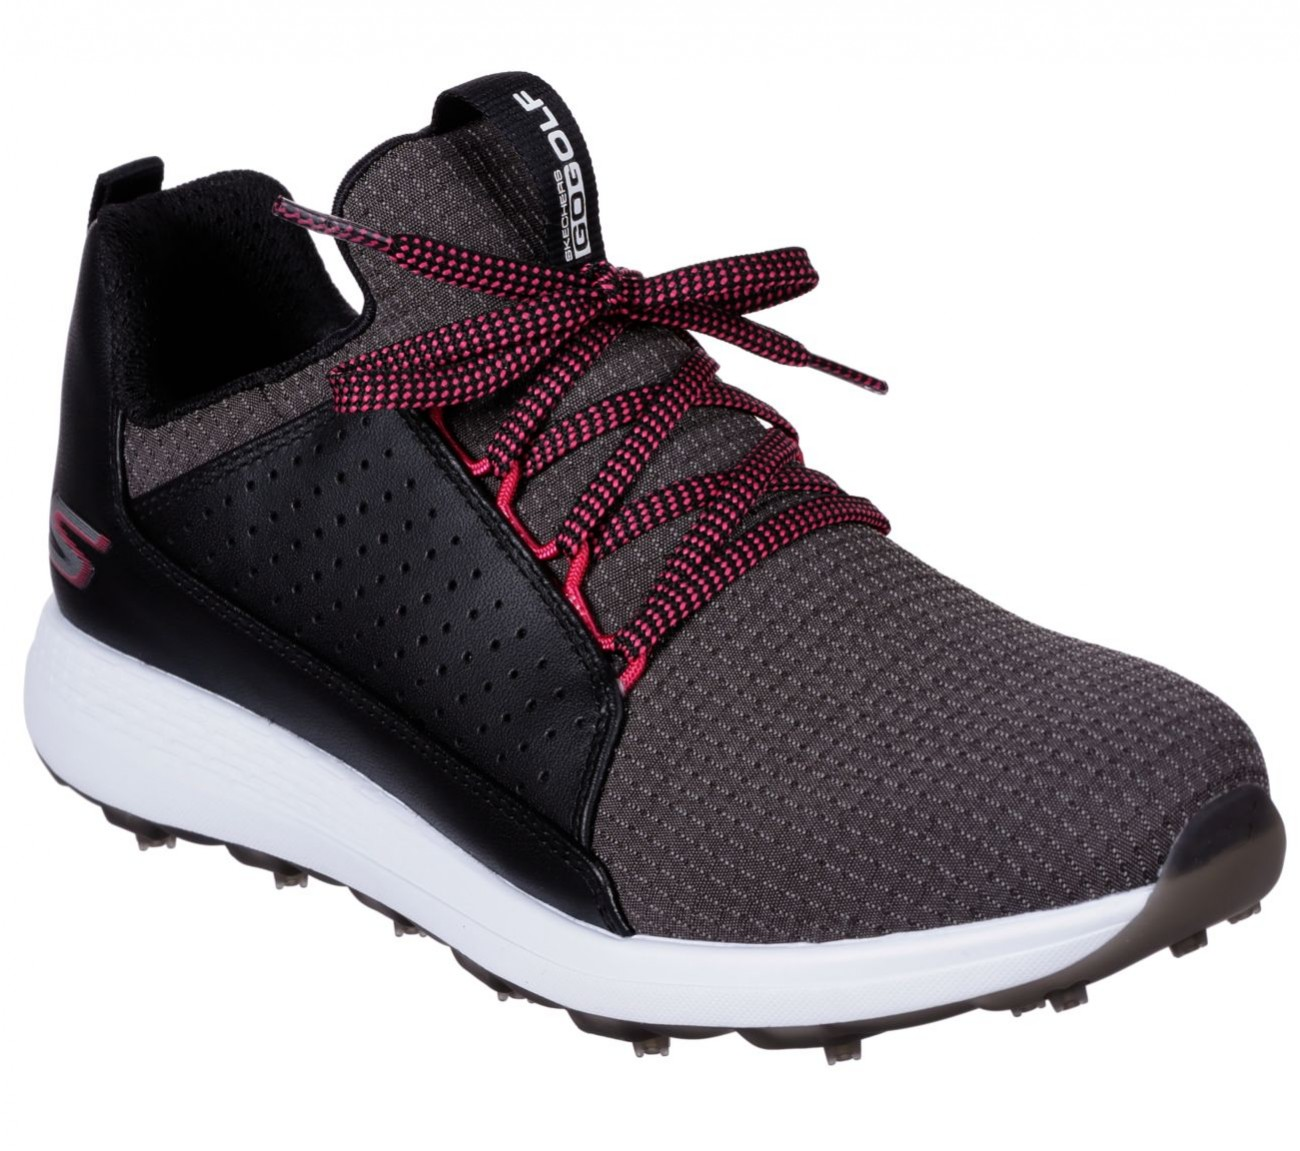 Womens Go Golf Max - MOJO - Water Resistant